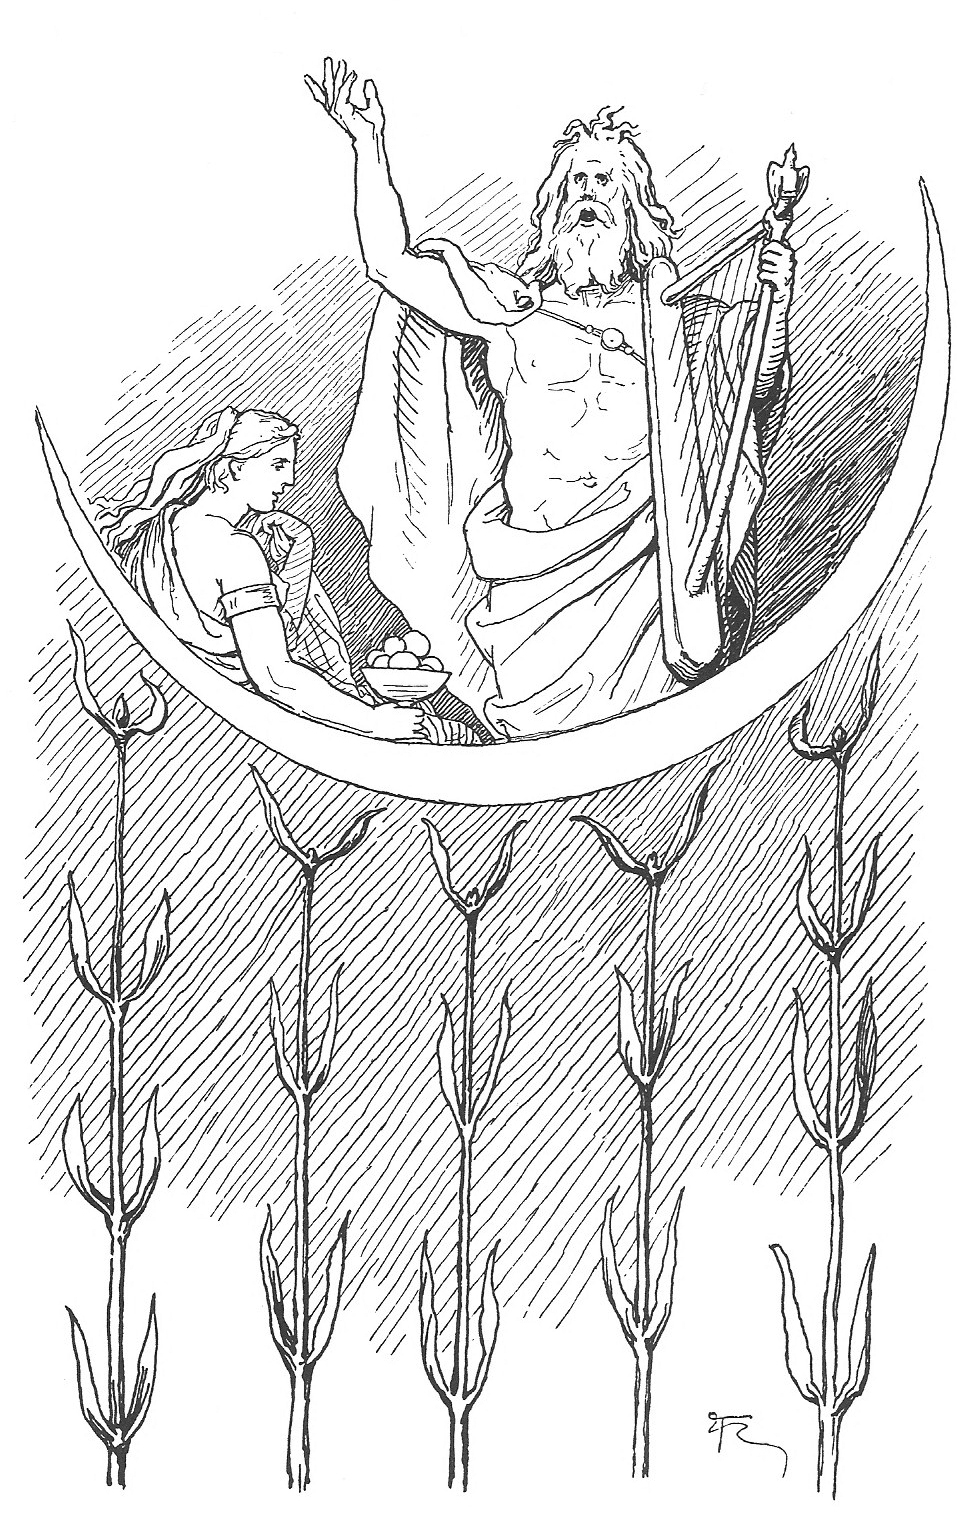 The god Bragi sings while the goddess Iðunn reclines in an 1895 illustration by Lorenz Frølich.  From Wikimedia Commons .